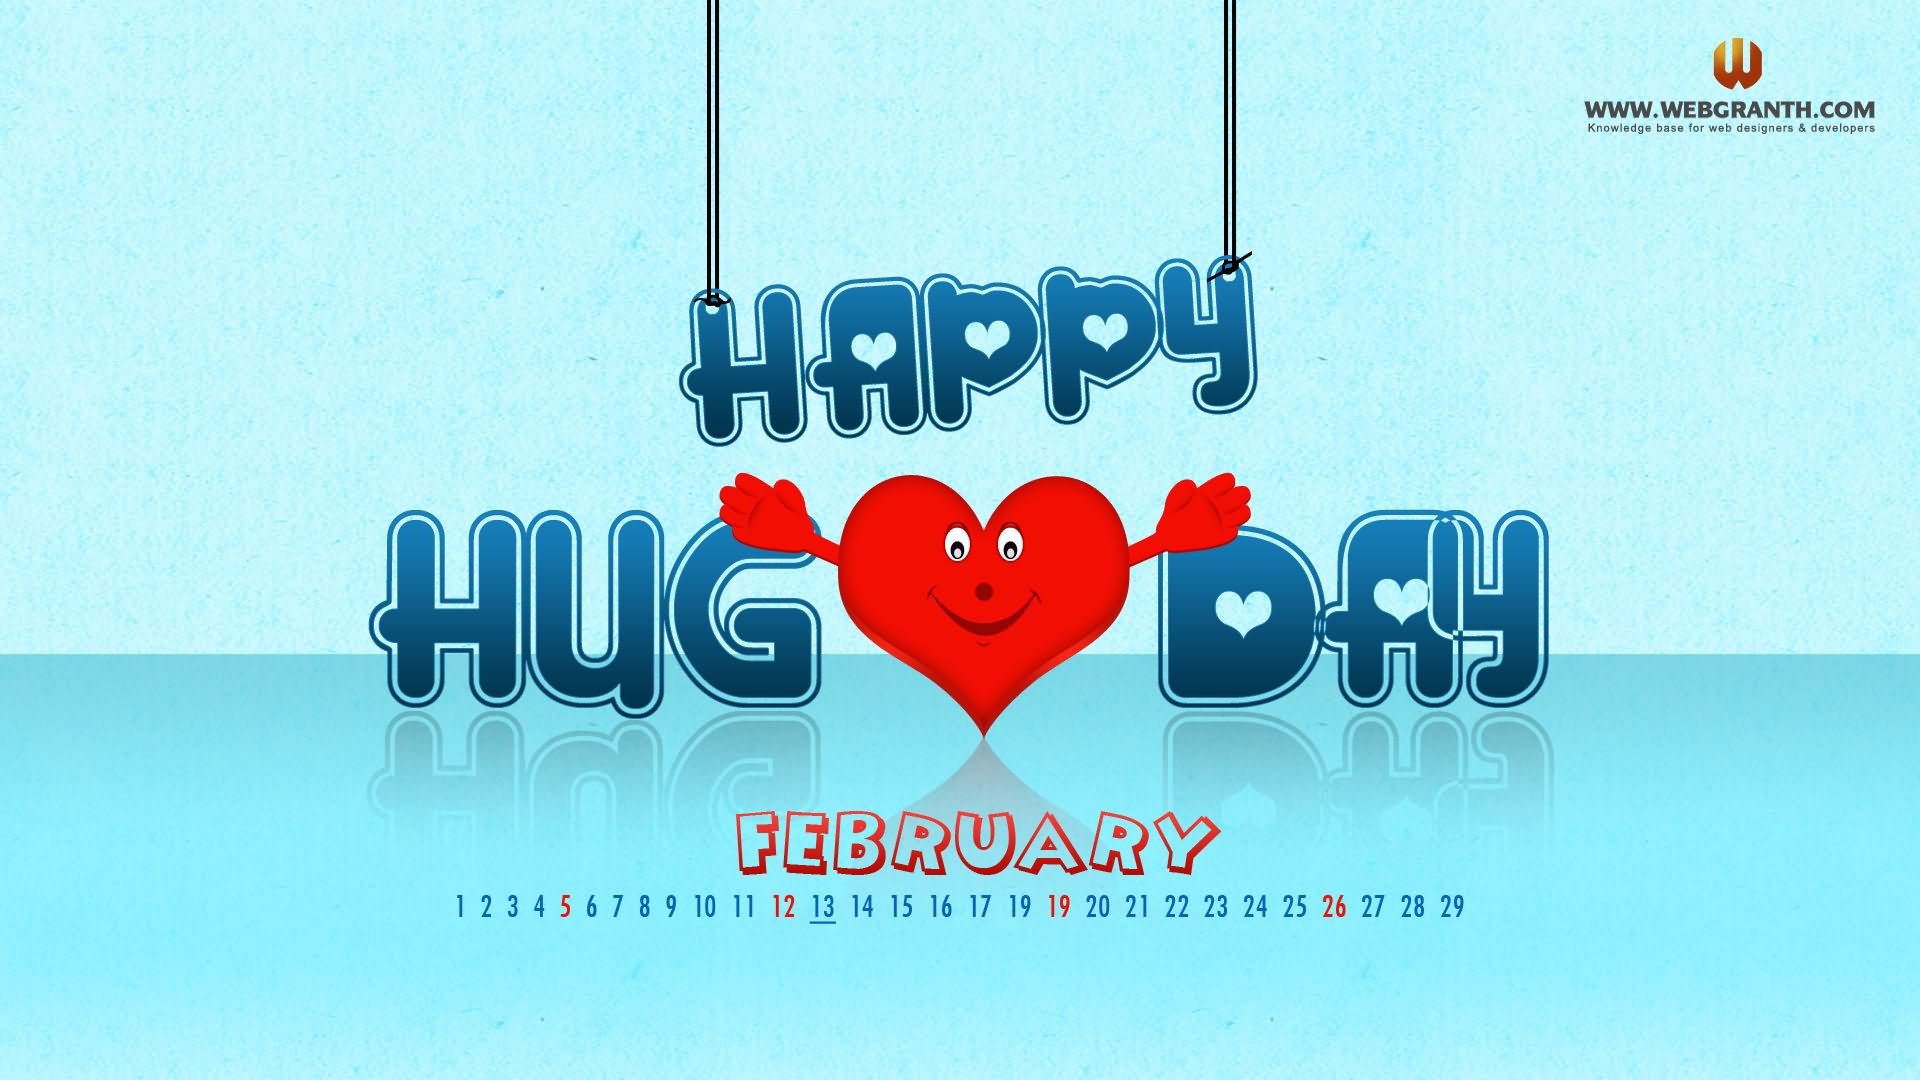 Sometimes It's Better To Put Love Into Hugs Happy Hug Day